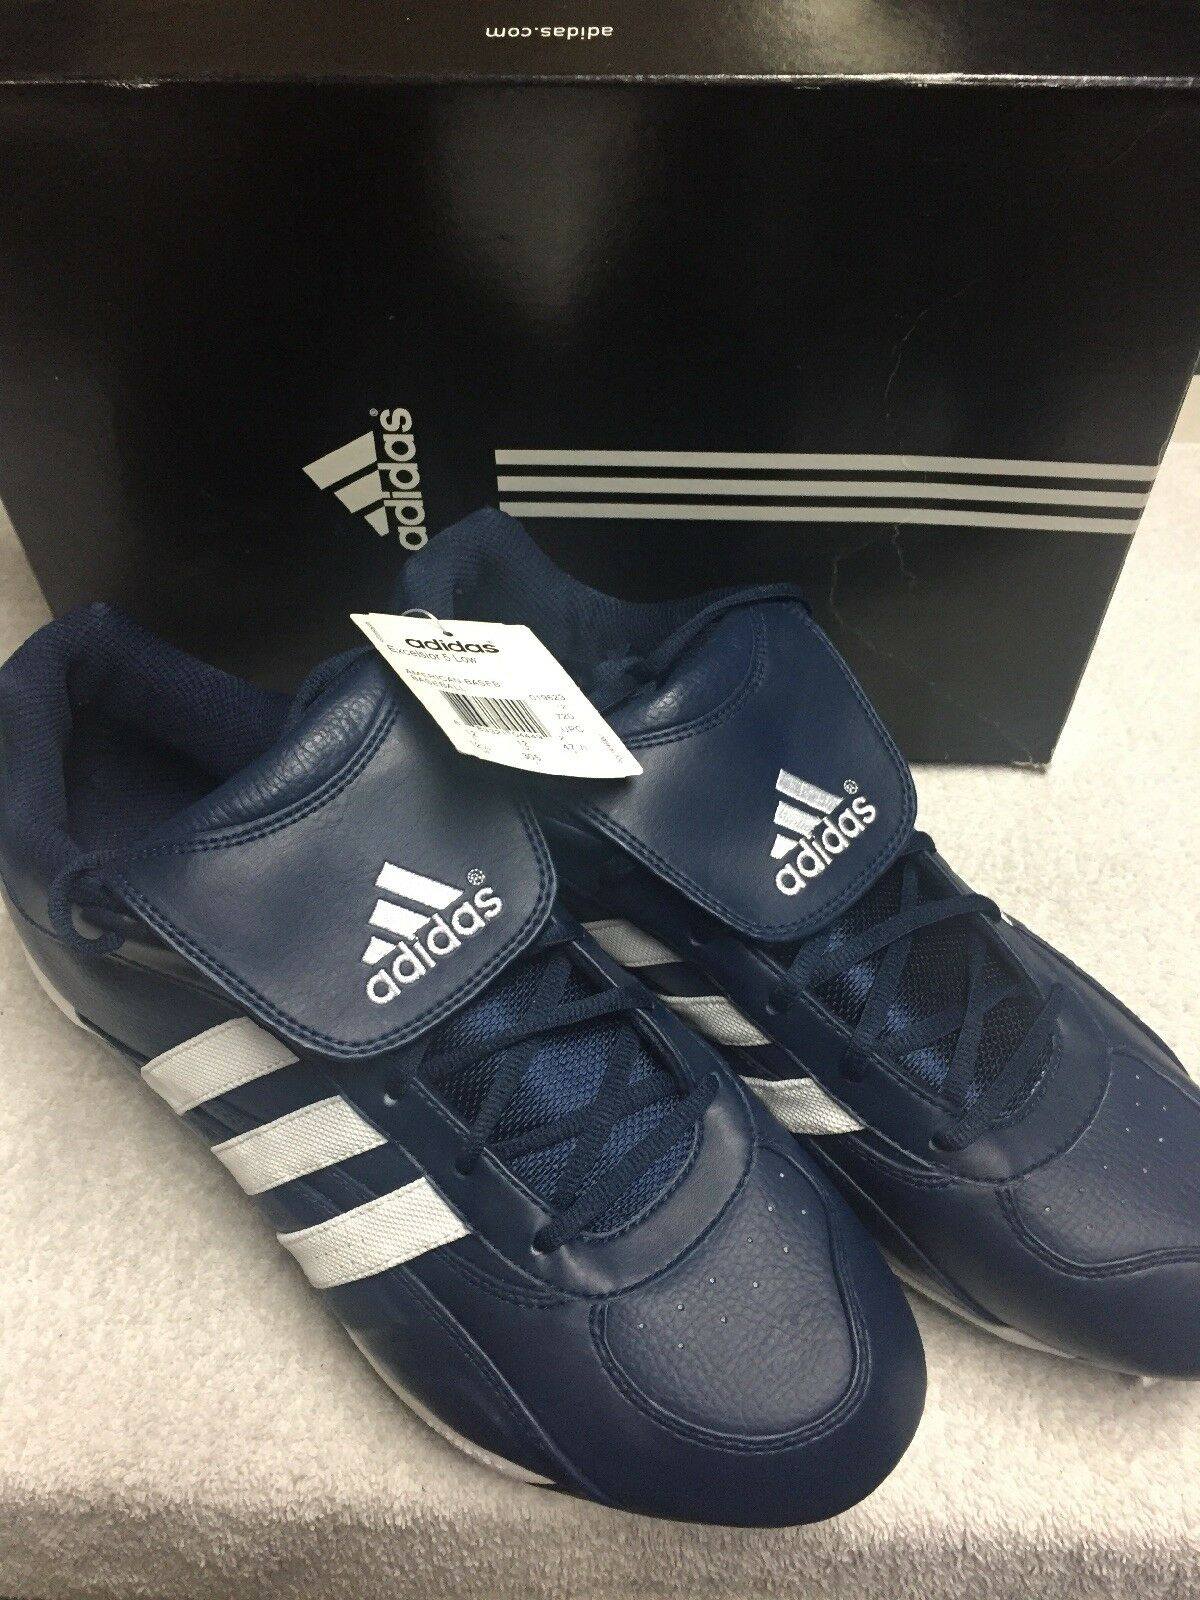 06ad827f8c4 Adidas Men s bluee White Striped Excelsior 5 Low Top Athletic Cleats Size  12.5 M